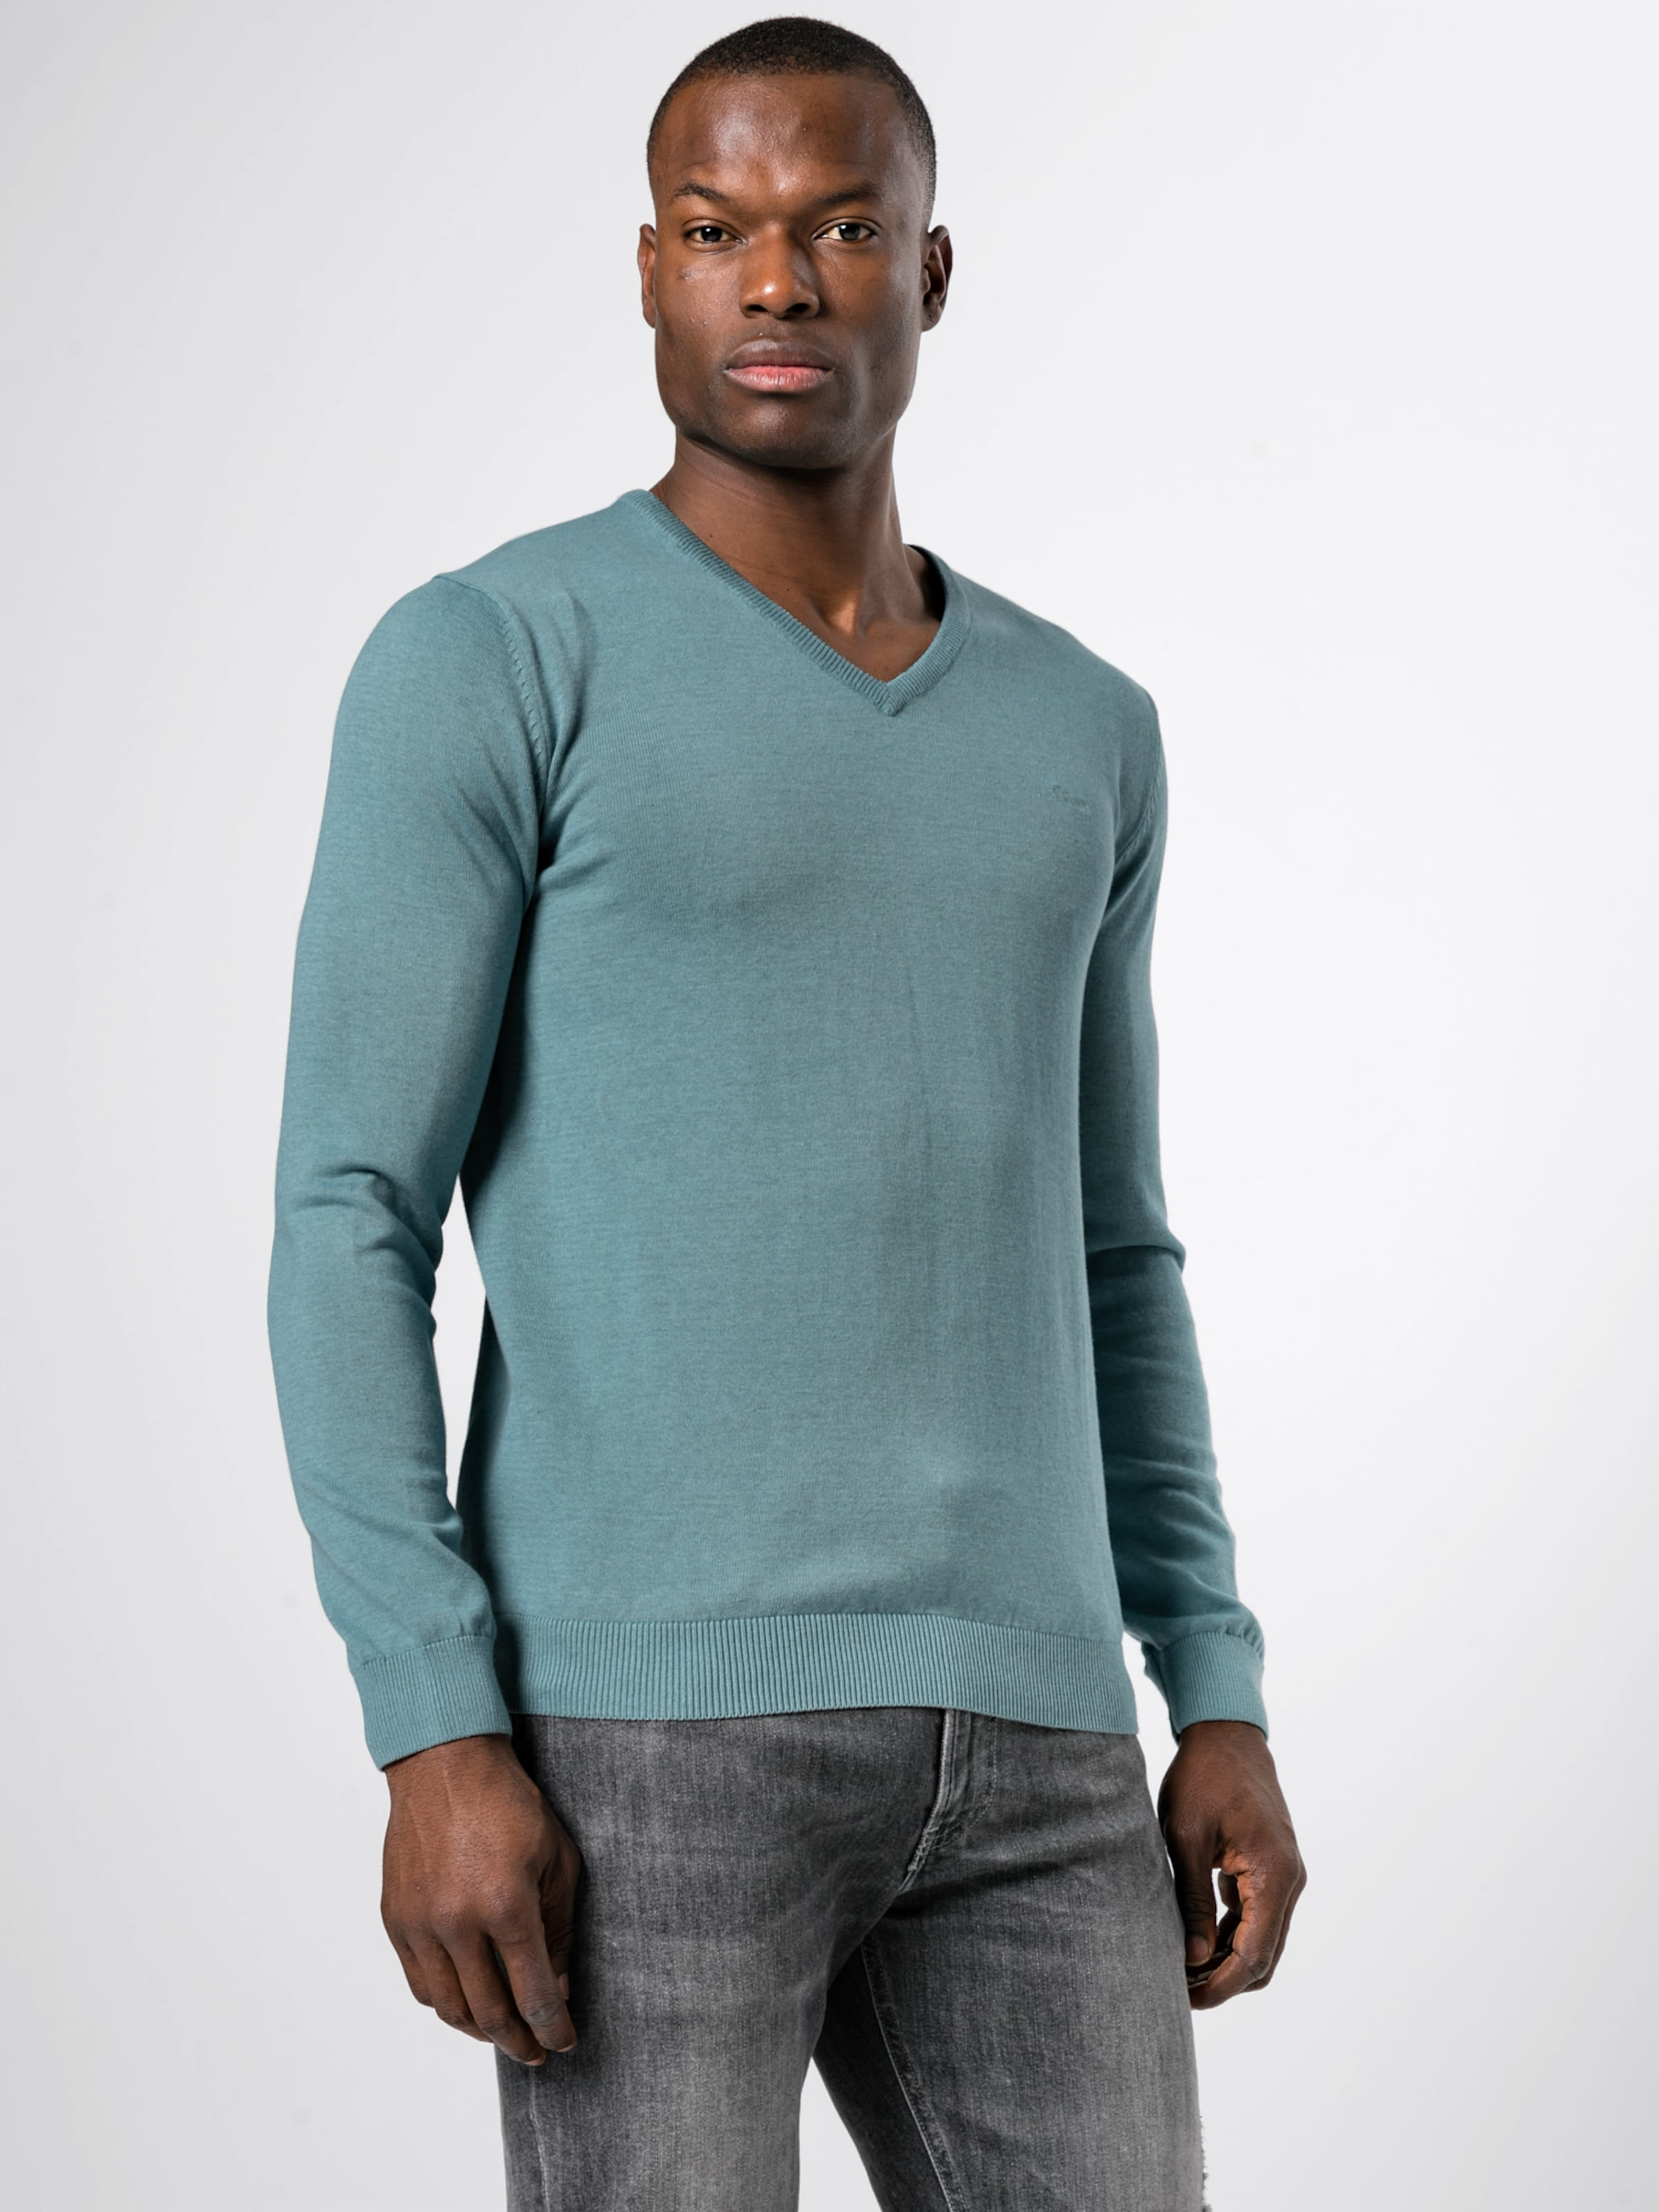 S oliver Label Pullover In Red Mint PZkXuiTO